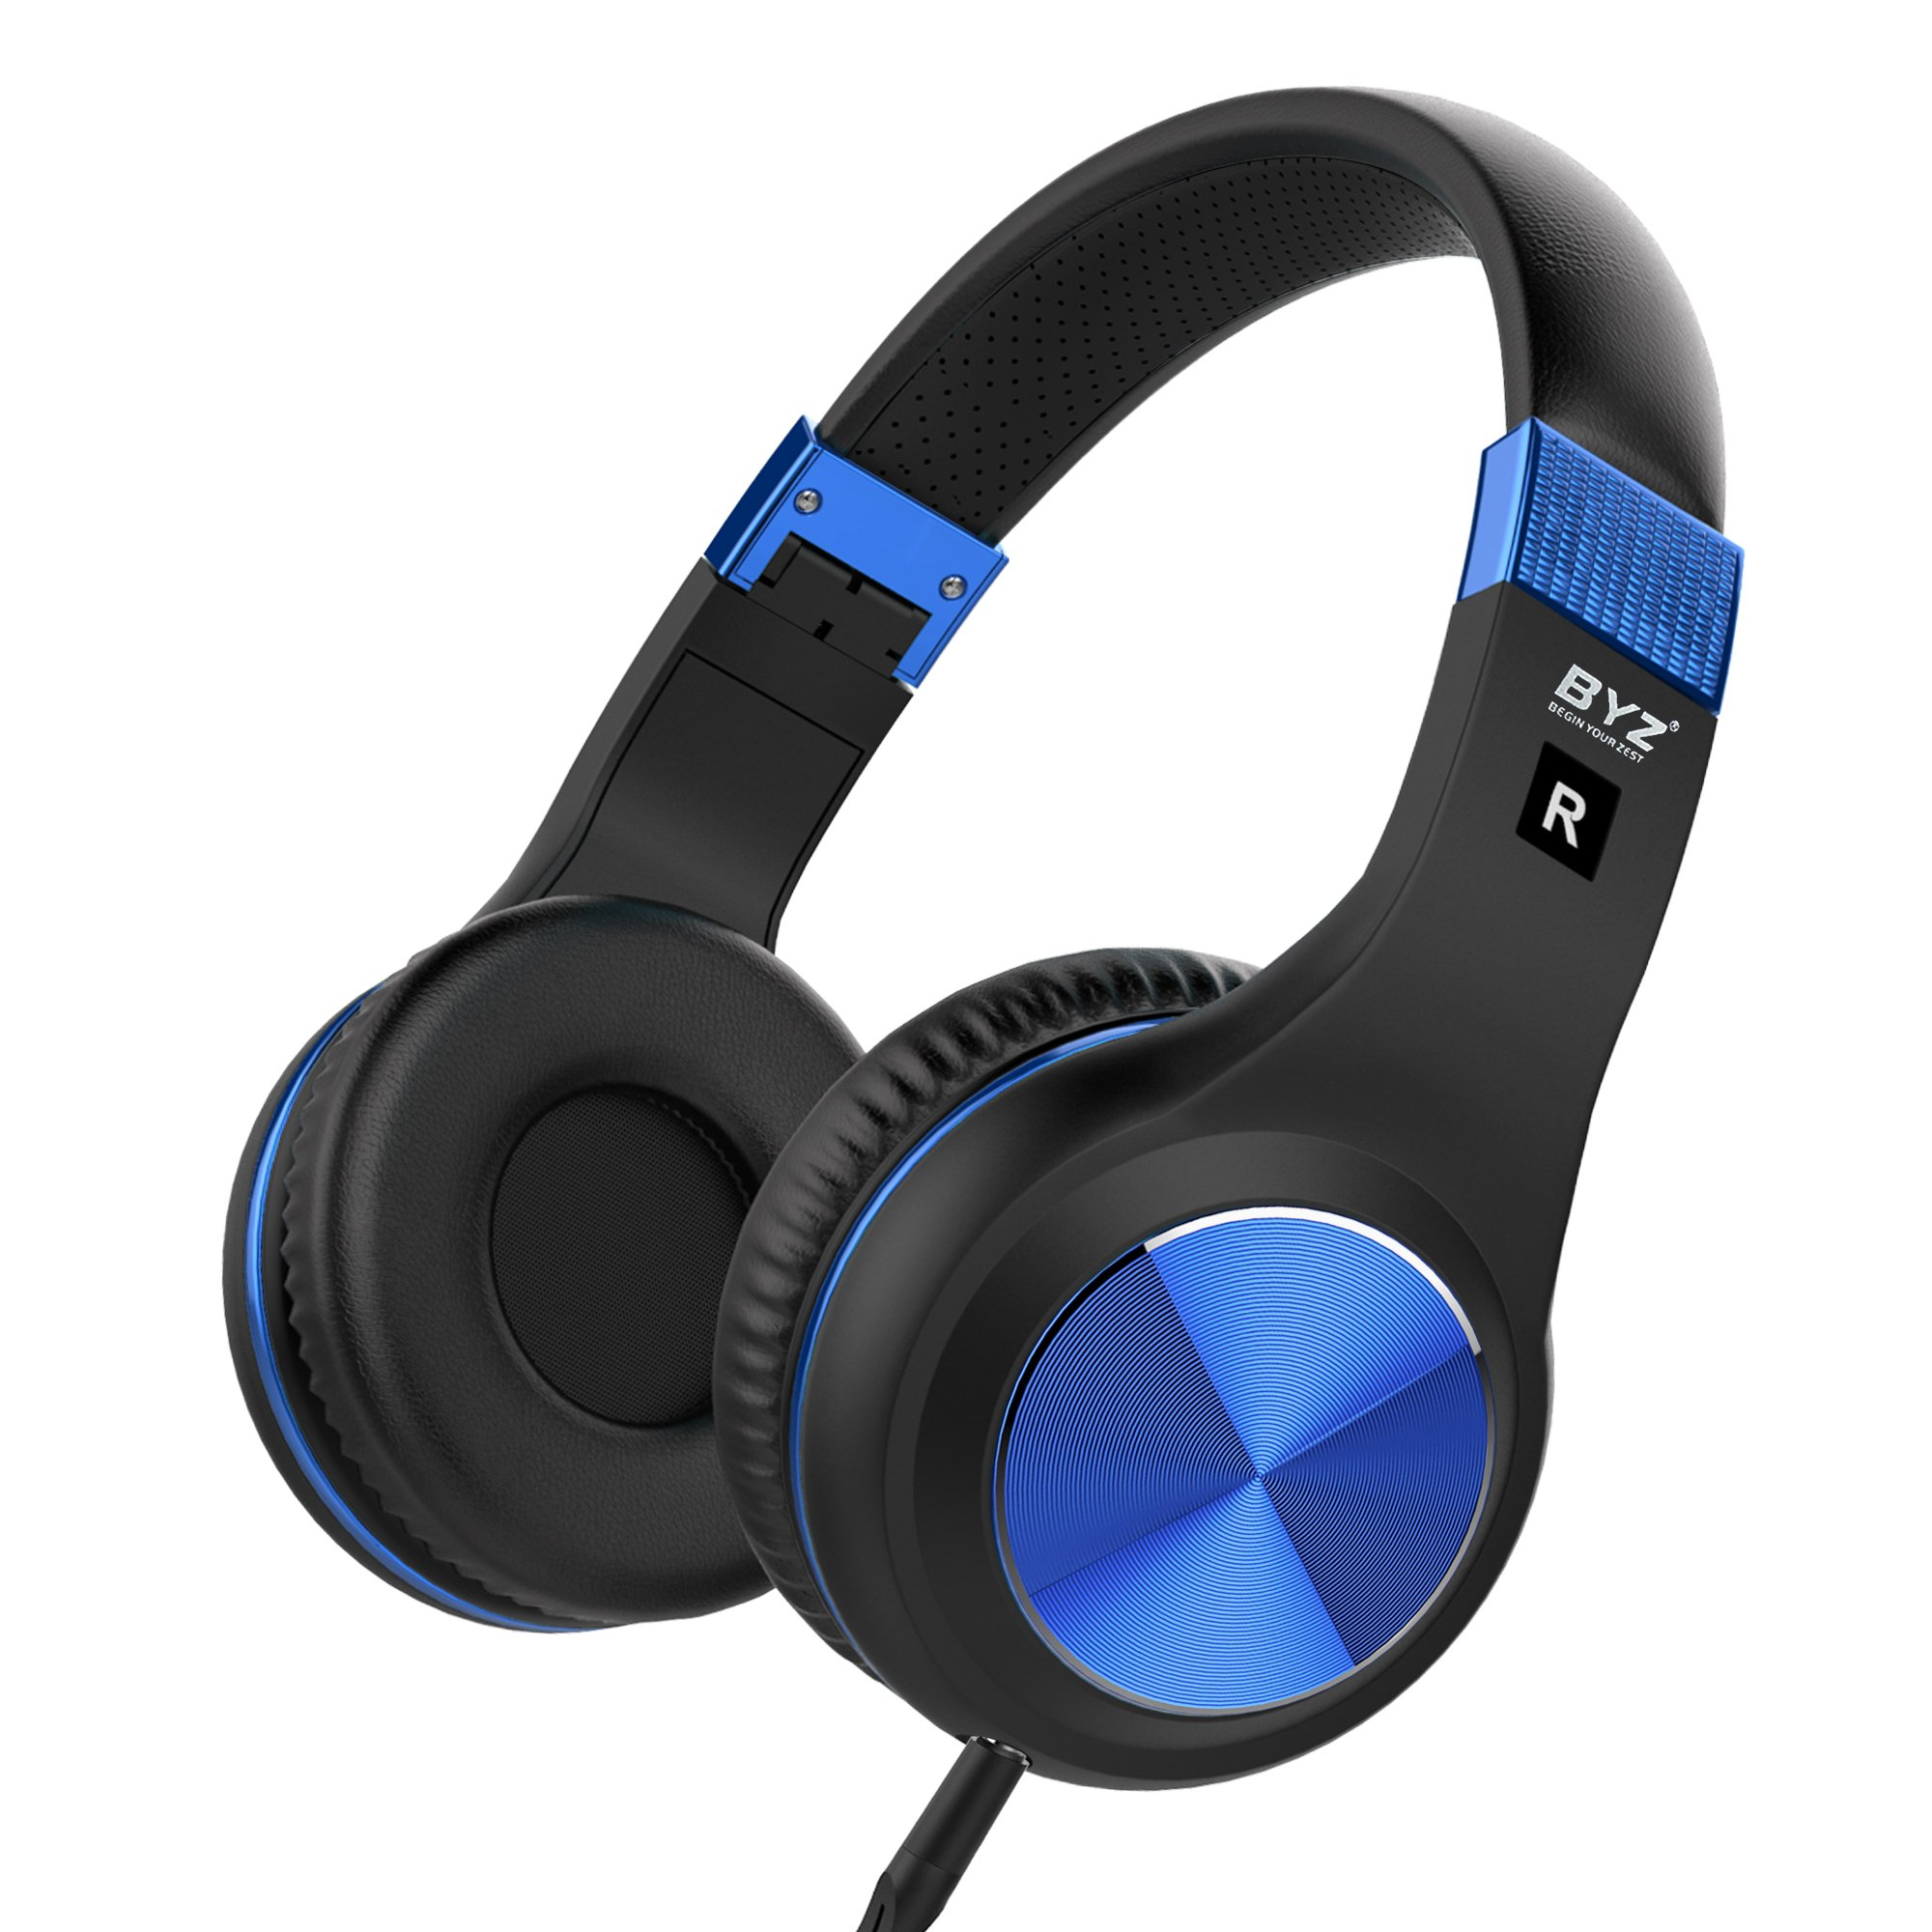 BYZ Stereo Over-Ear Headphones with Microphone Lightweight and Foldable Wired Headphones by BYZ